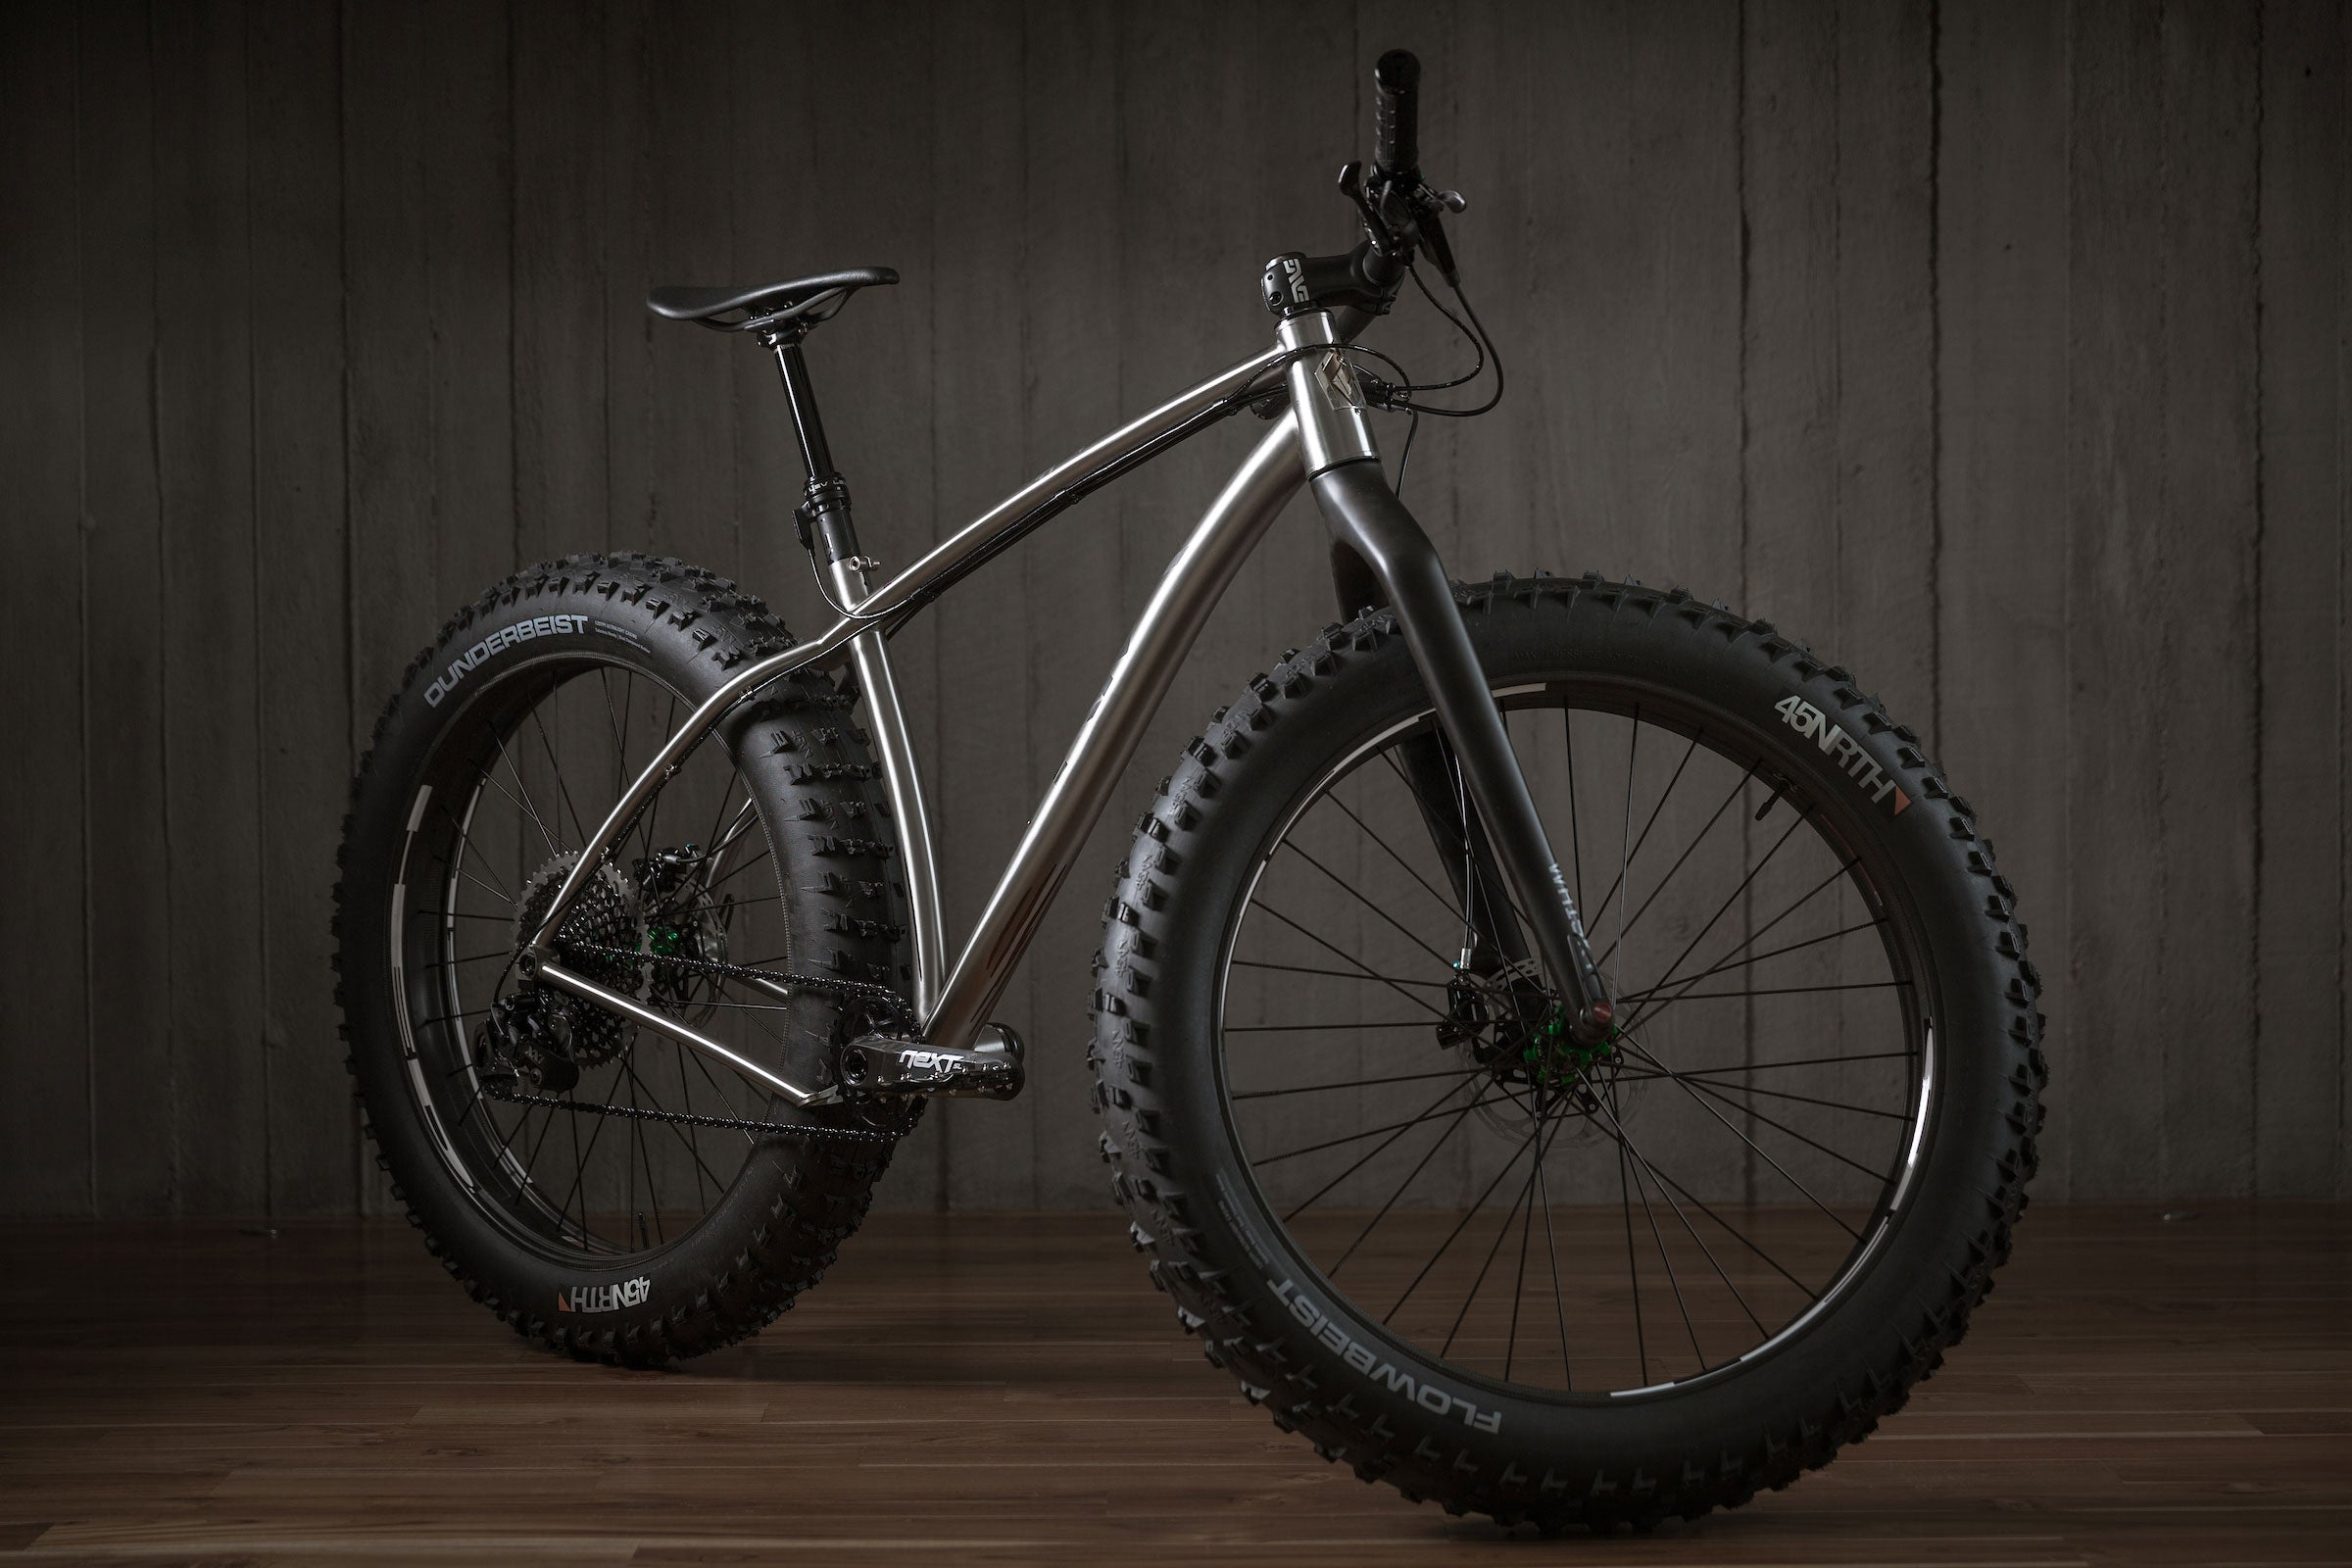 Rise Bikes Grizzly Titanium Fat Bike 3/4 Profile